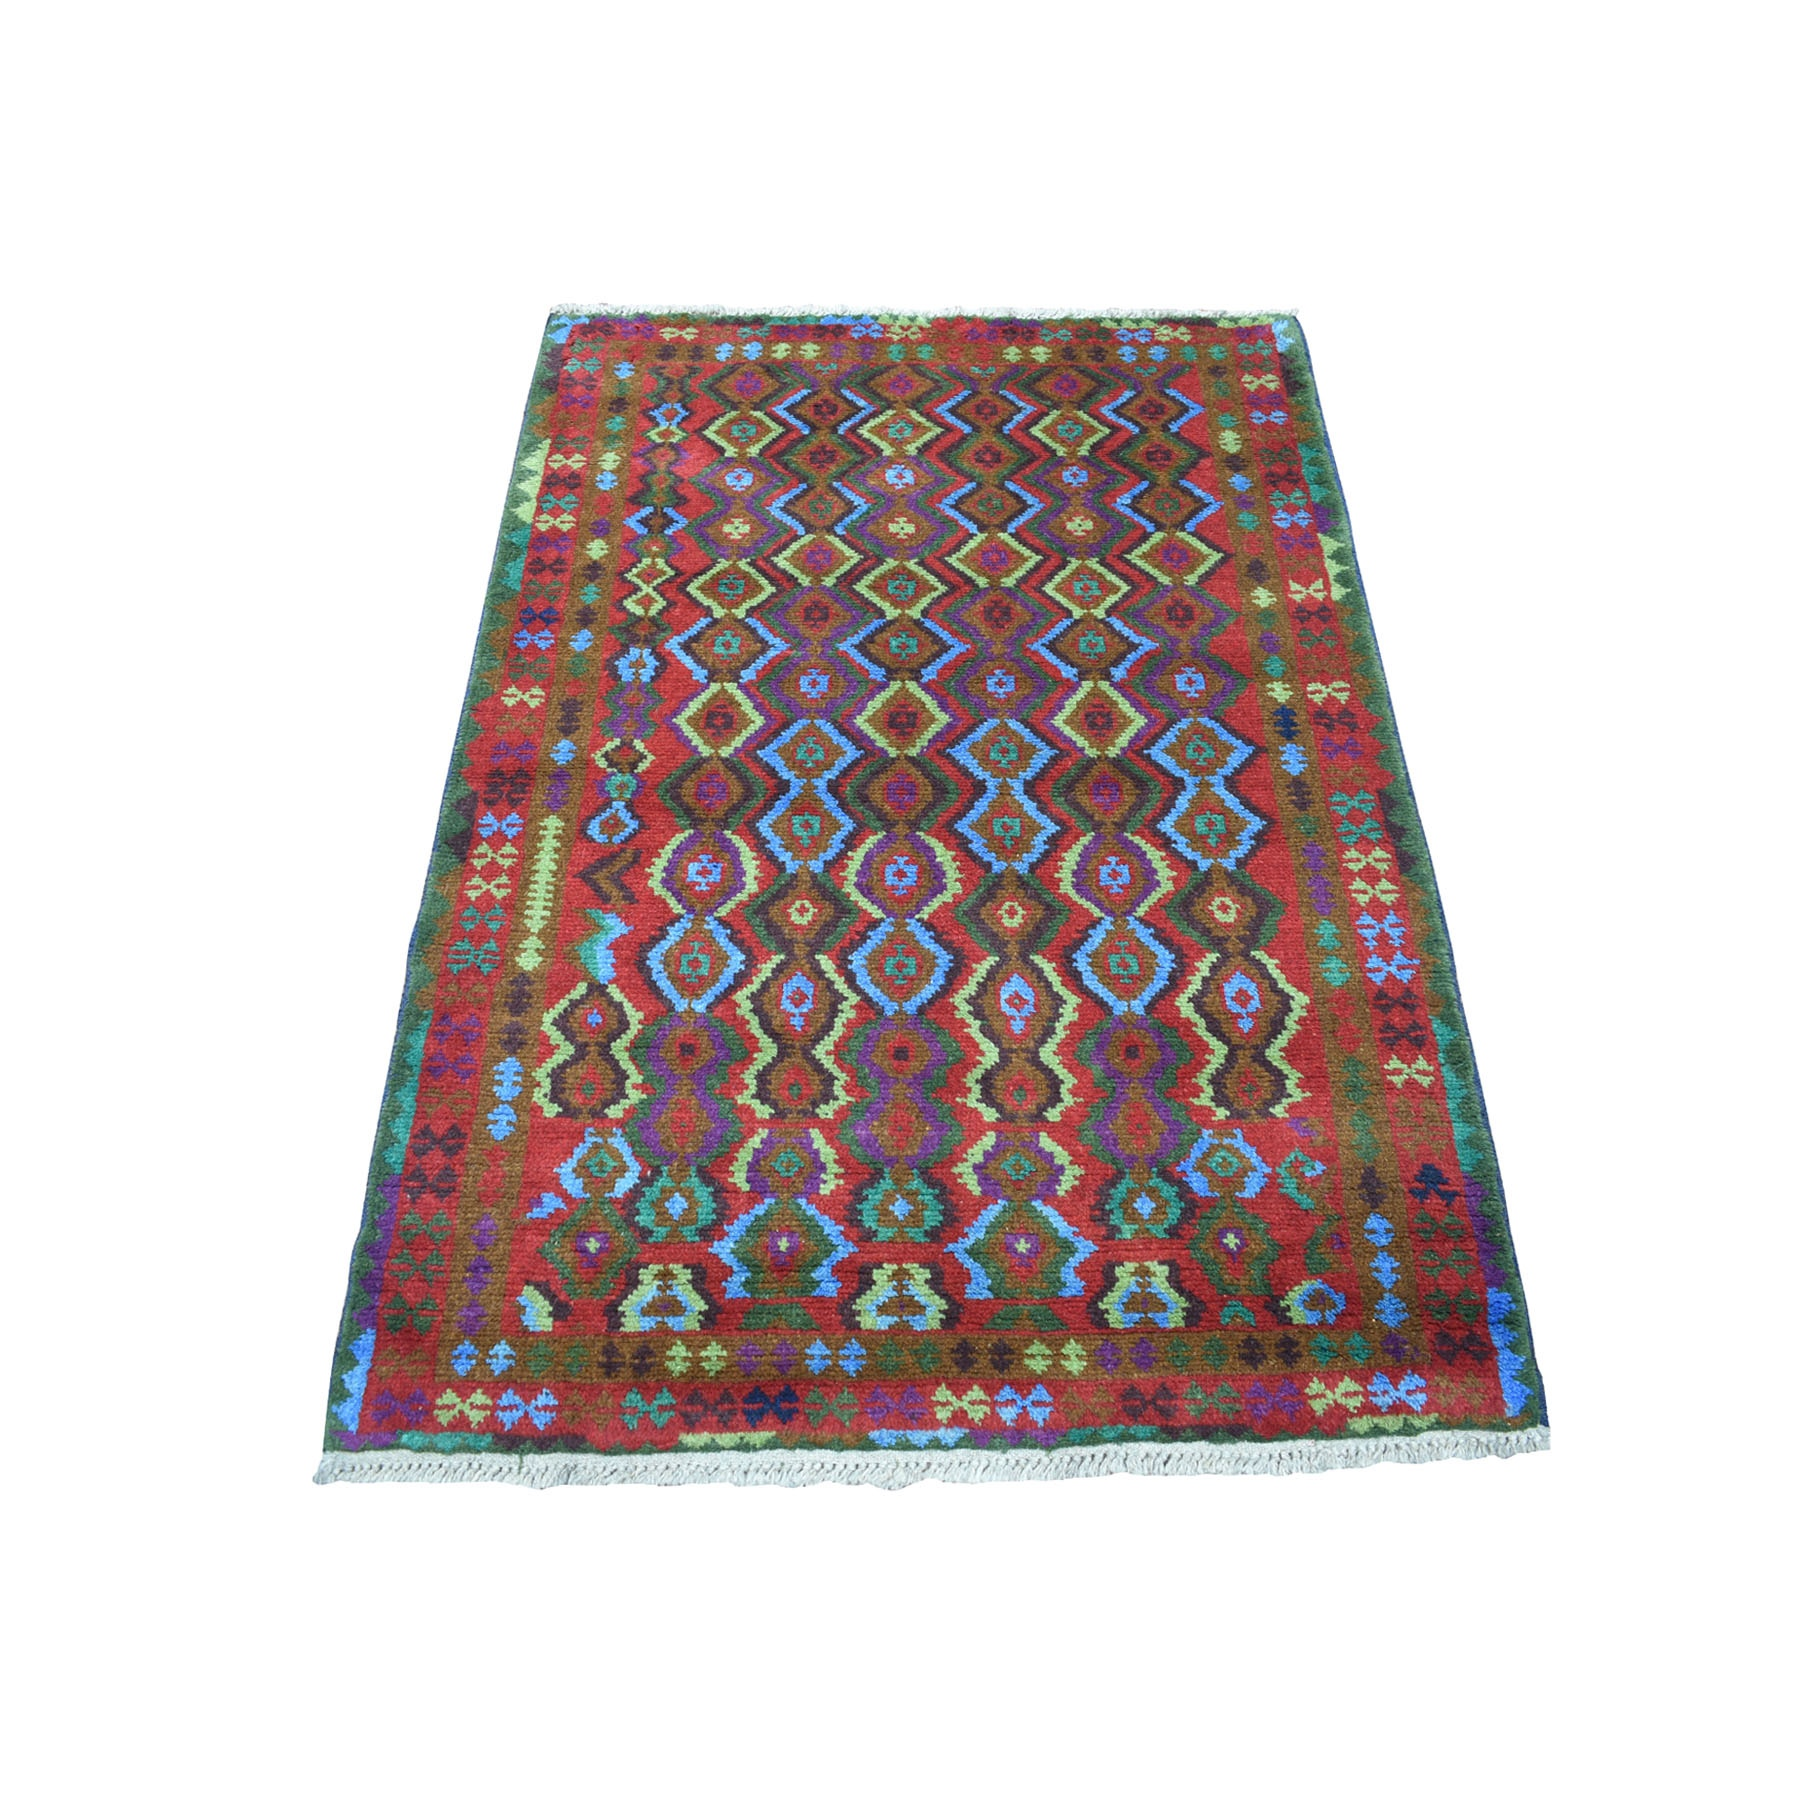 "3'5""x4'8"" Purple Geometric Design Colorful Afghan Baluch Pure Wool Hand Knotted Oriental Rug"